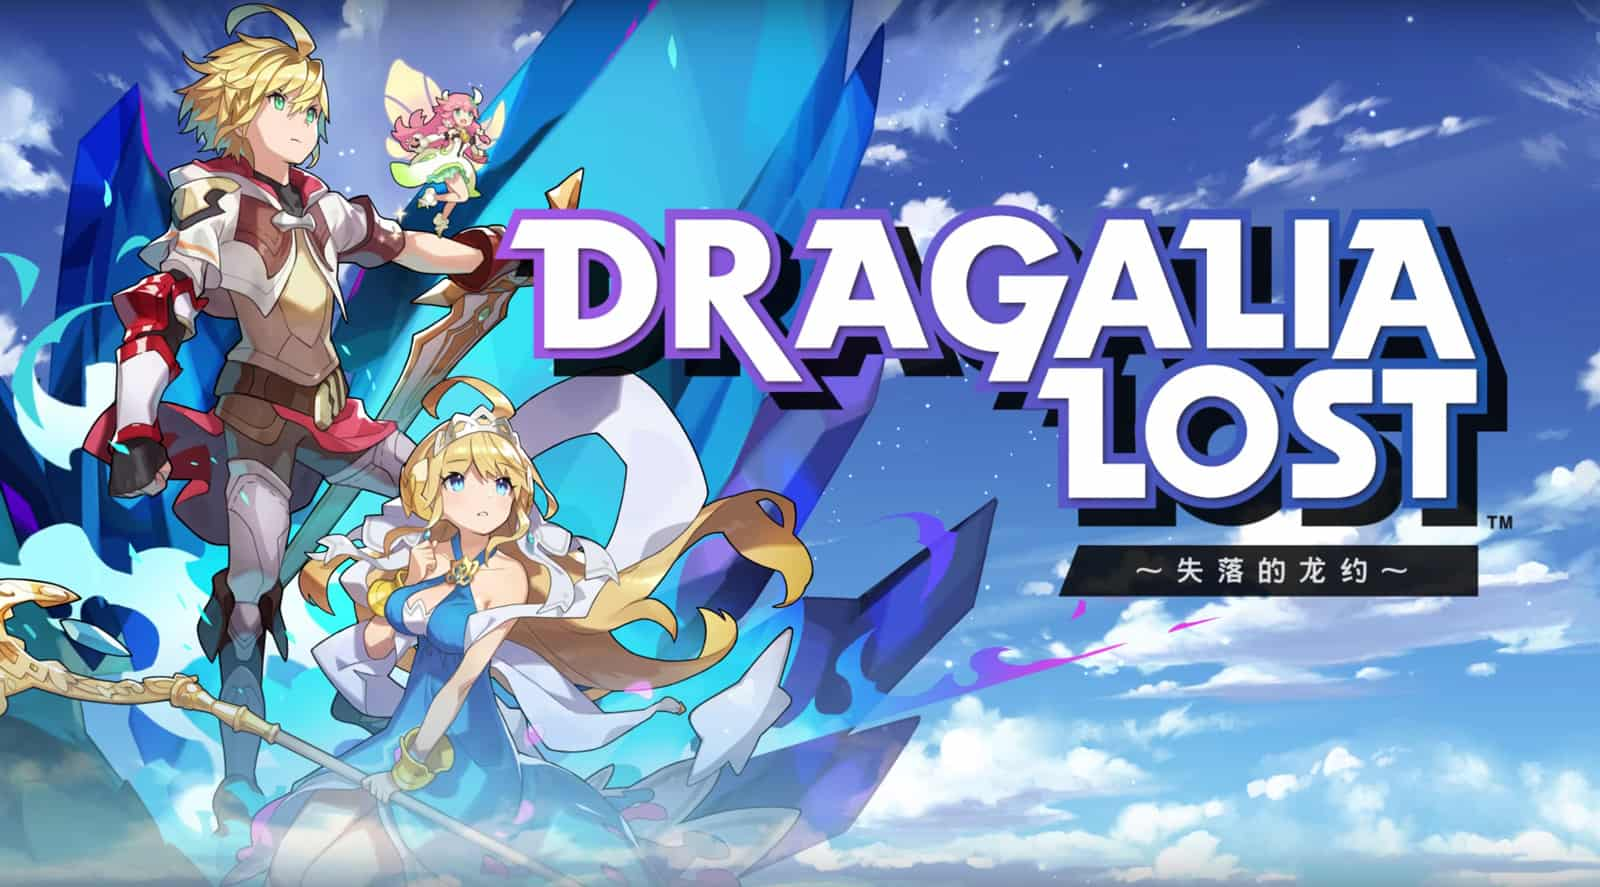 Nintendo will Bring Dragalia Lost RPG to iOS Next Month